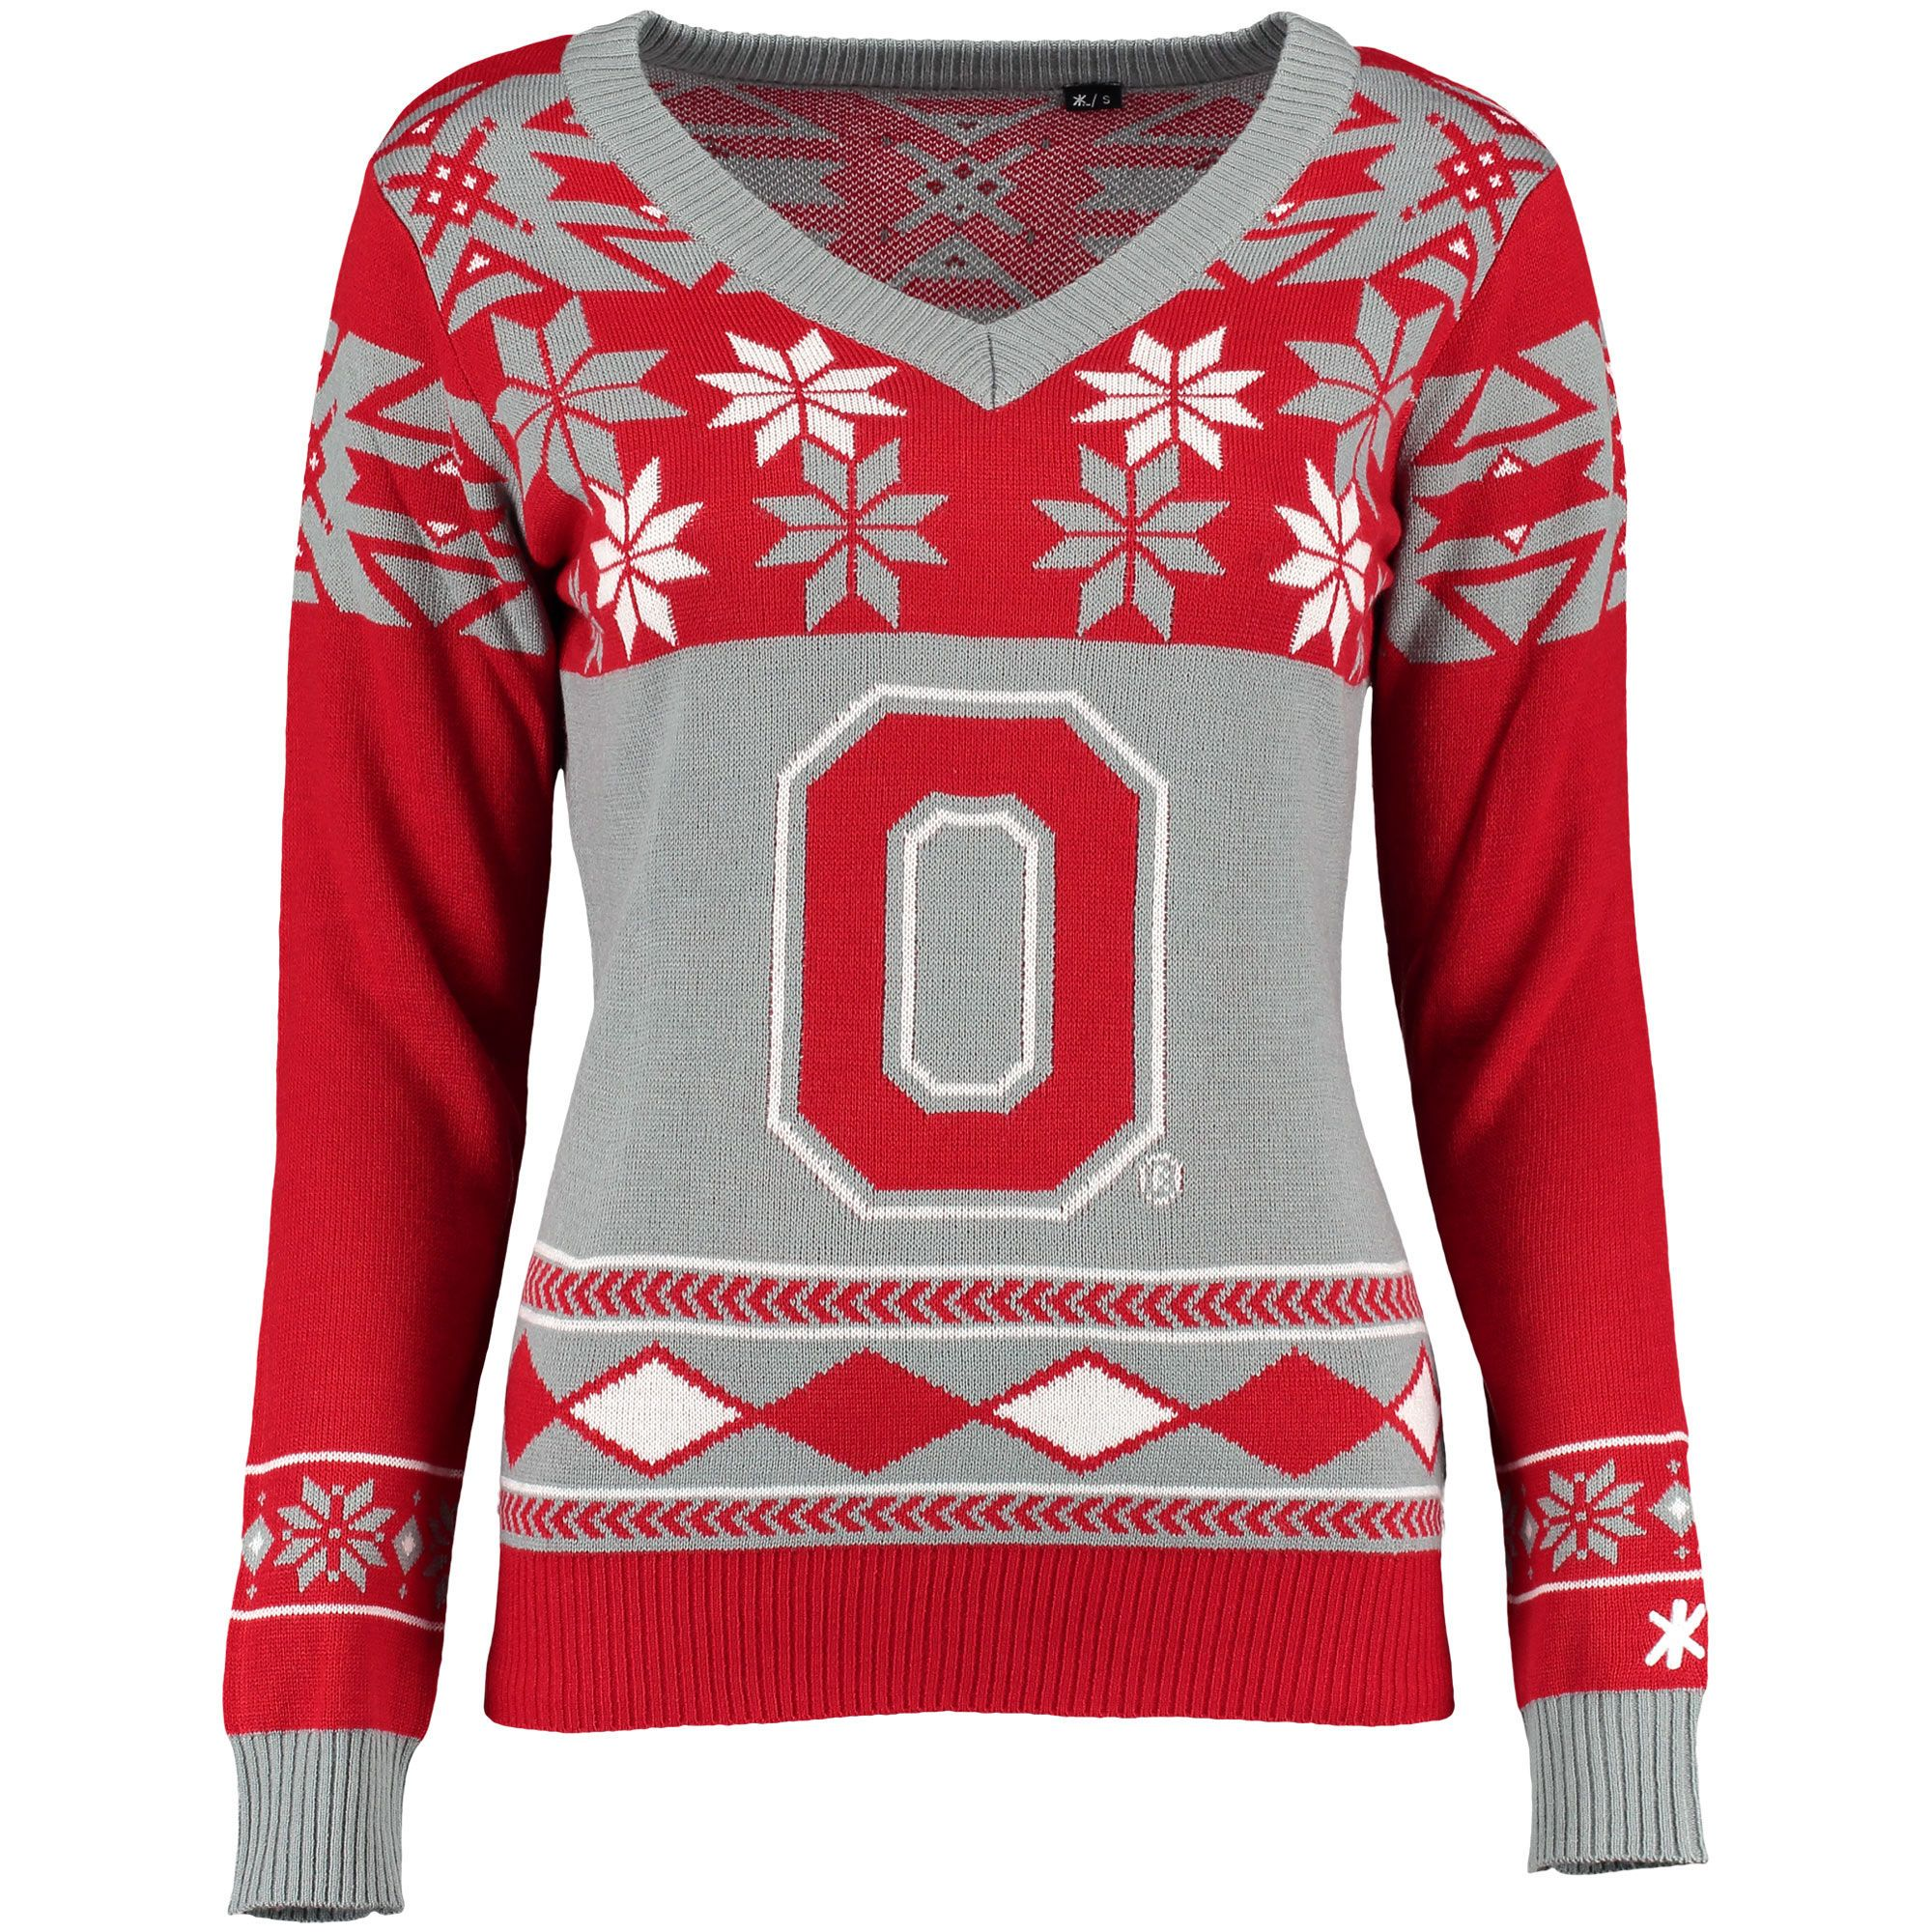 Ohio State Buckeyes Klew Women's Ugly Christmas V-Neck Sweater - Scarlet